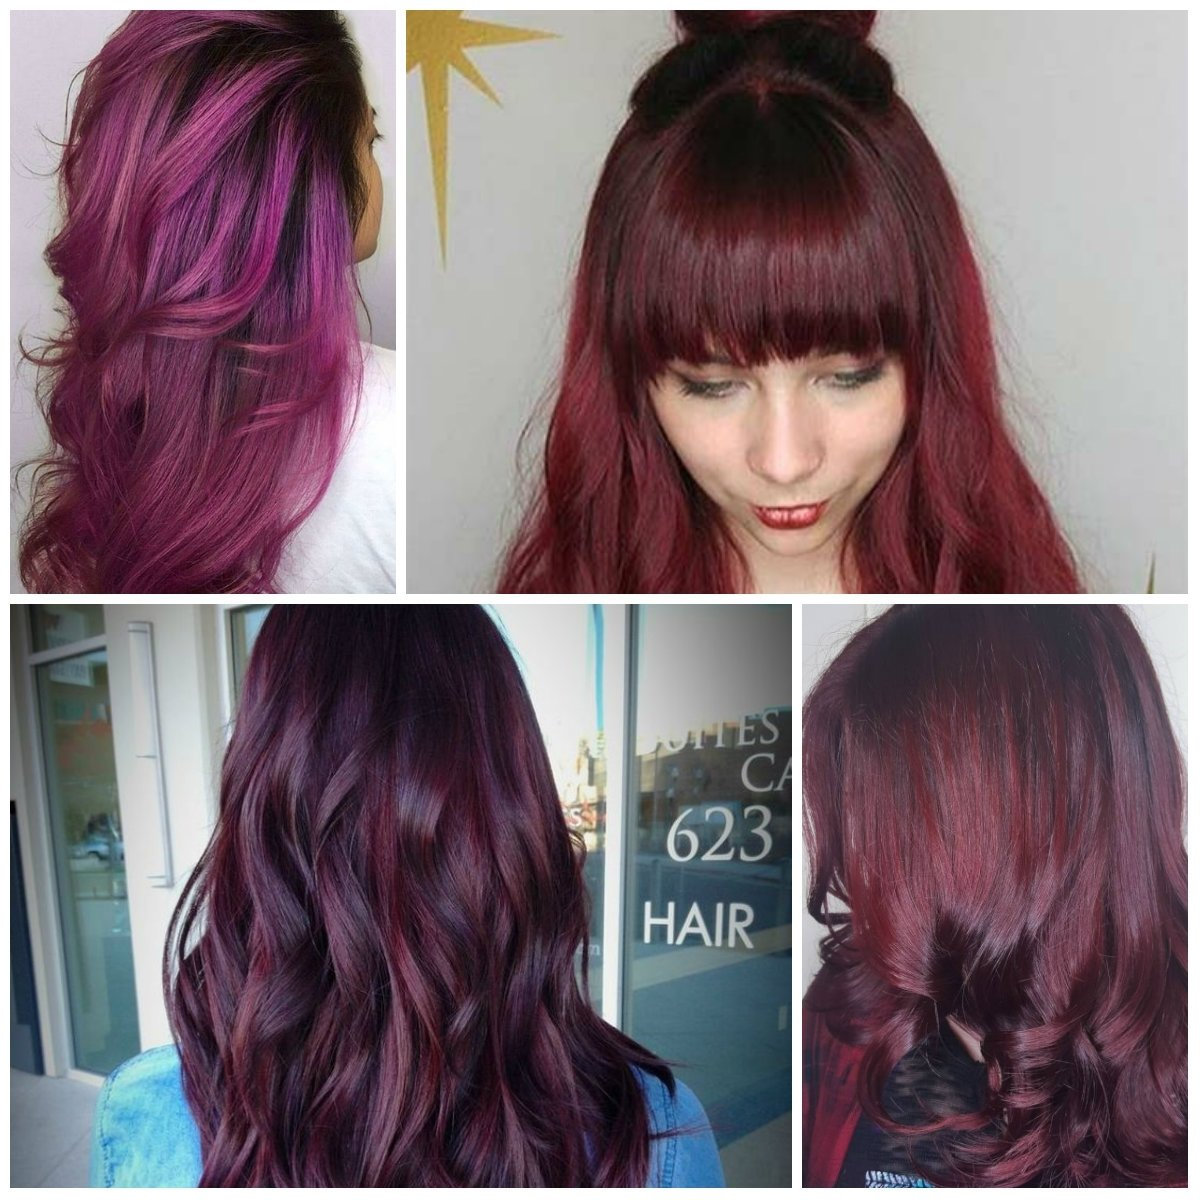 10 Cute Red And Brown Hair Ideas